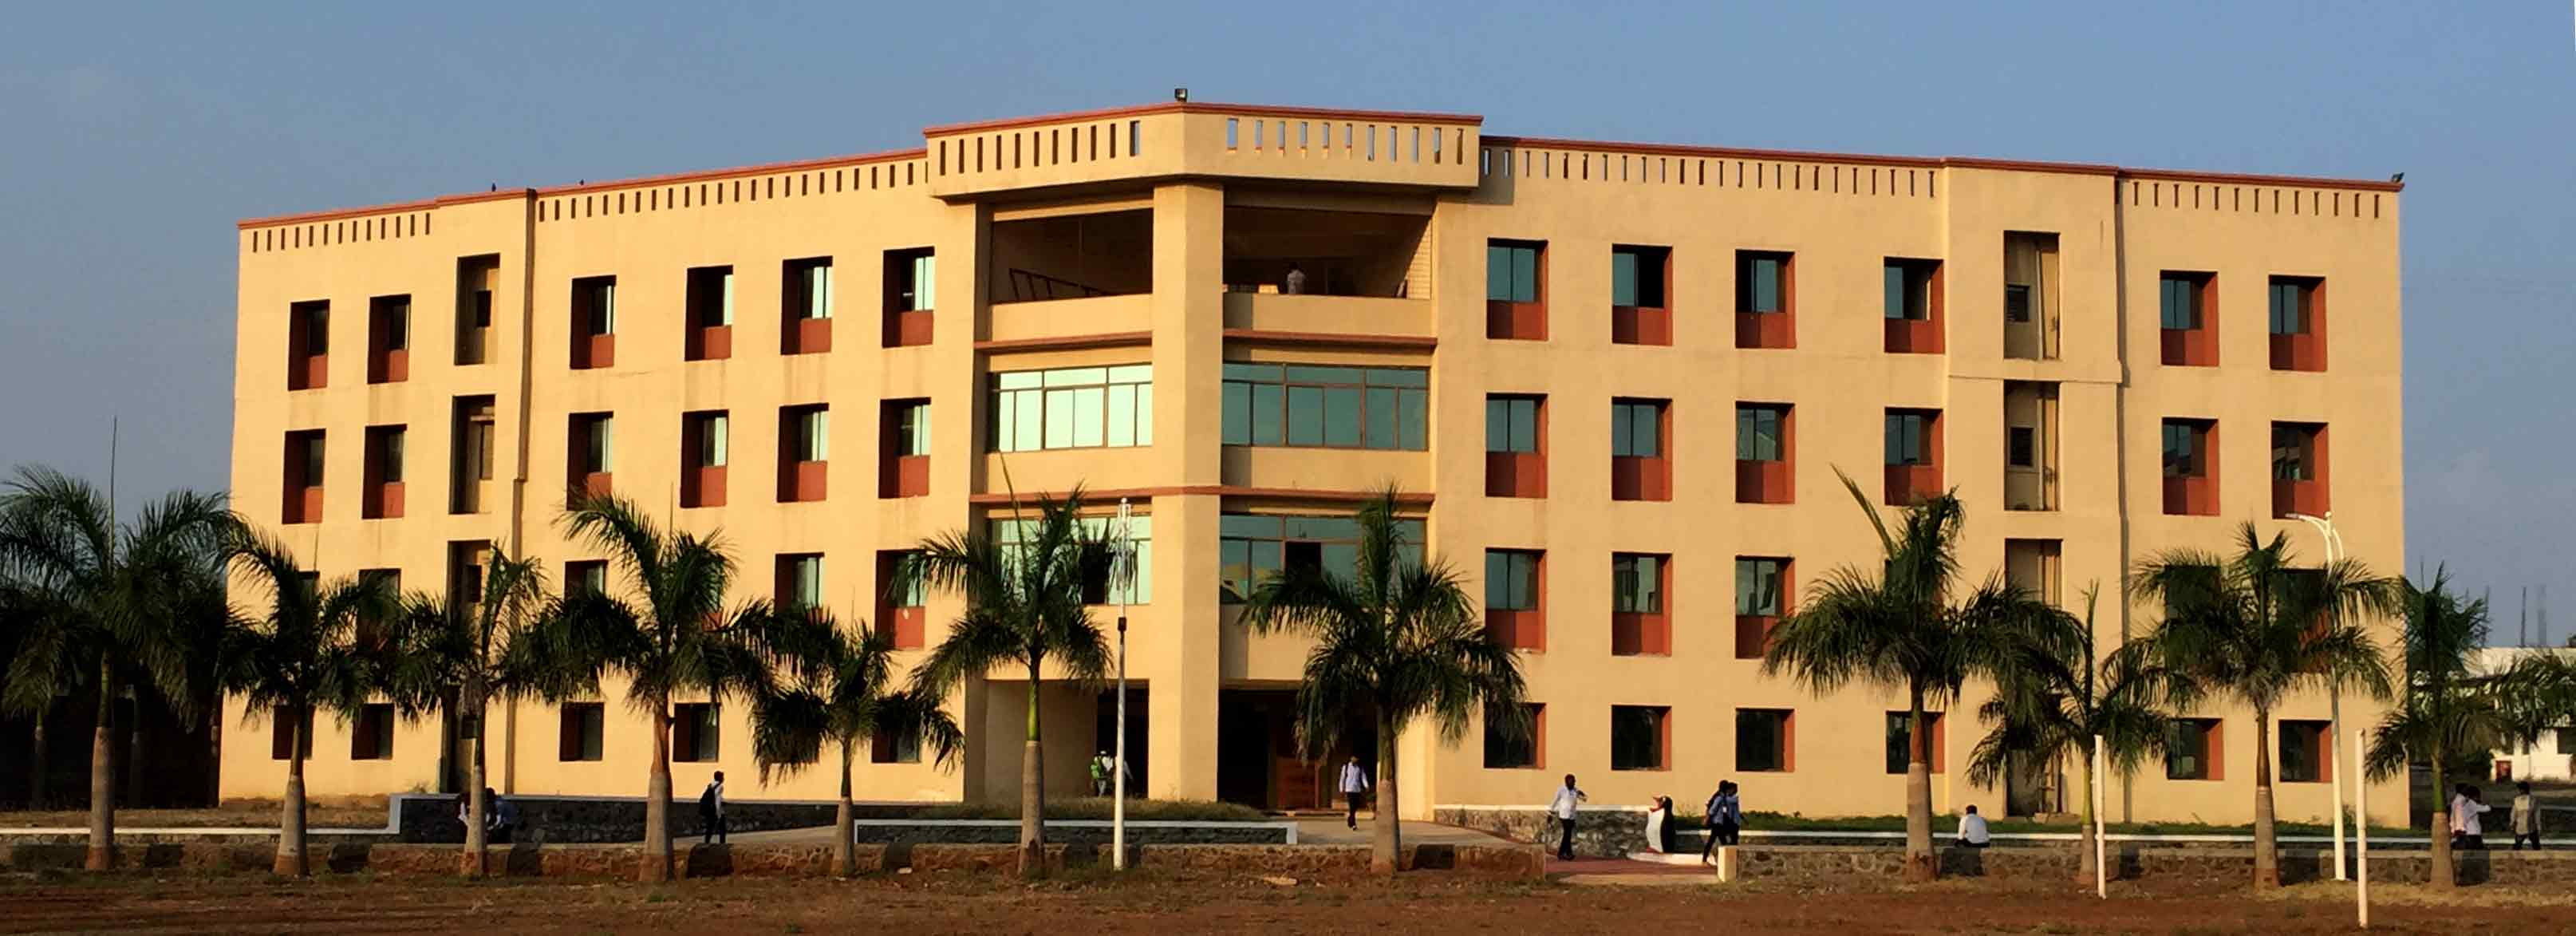 IIIT (Indian Institute of Information Technology), Pune Image